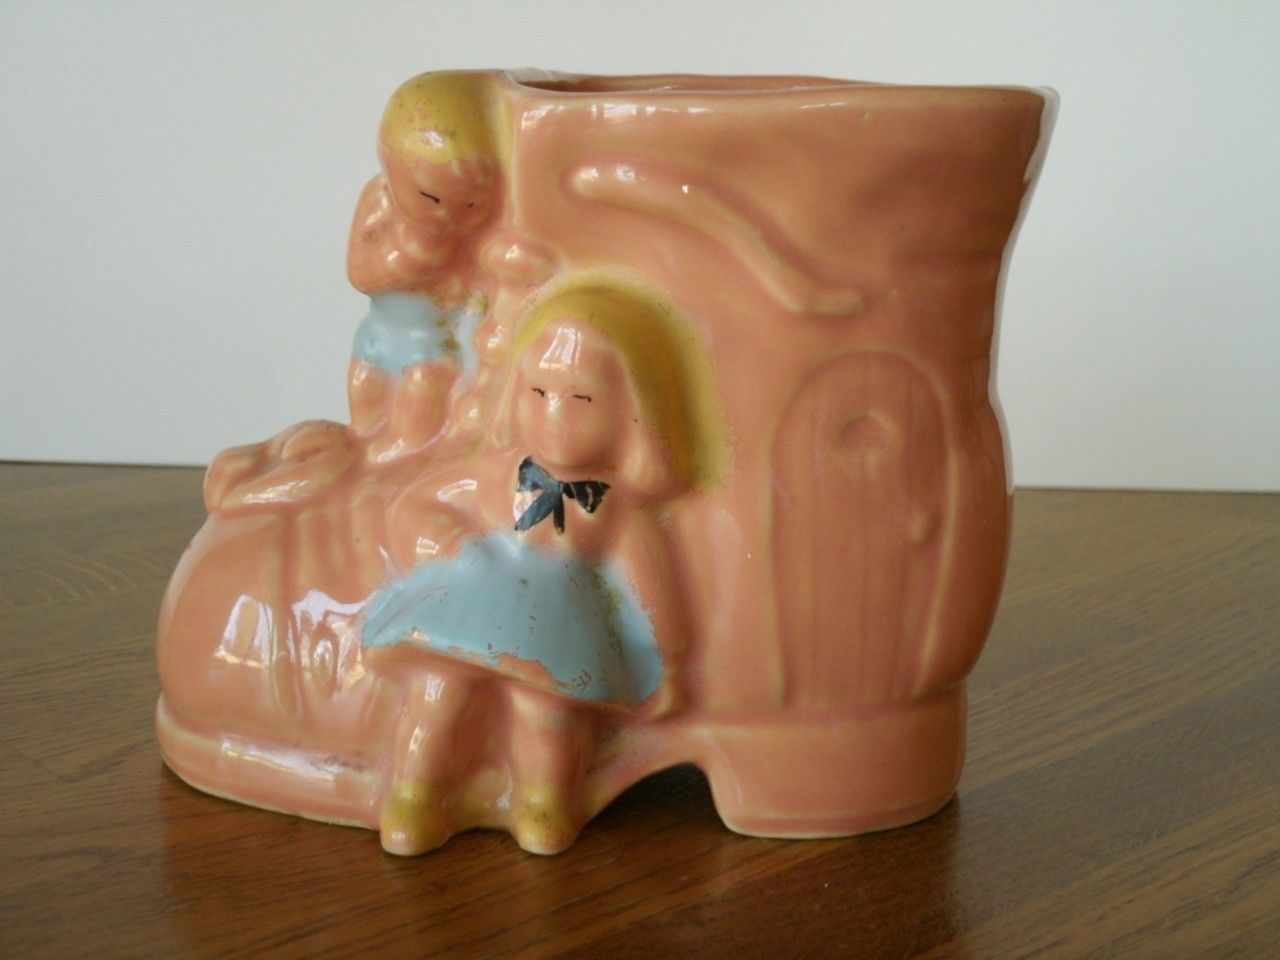 VINTAGE, USA POTTERY, BABY SHOE PLANTER; #325 OLD WOMAN IN A SHOE PLANTER